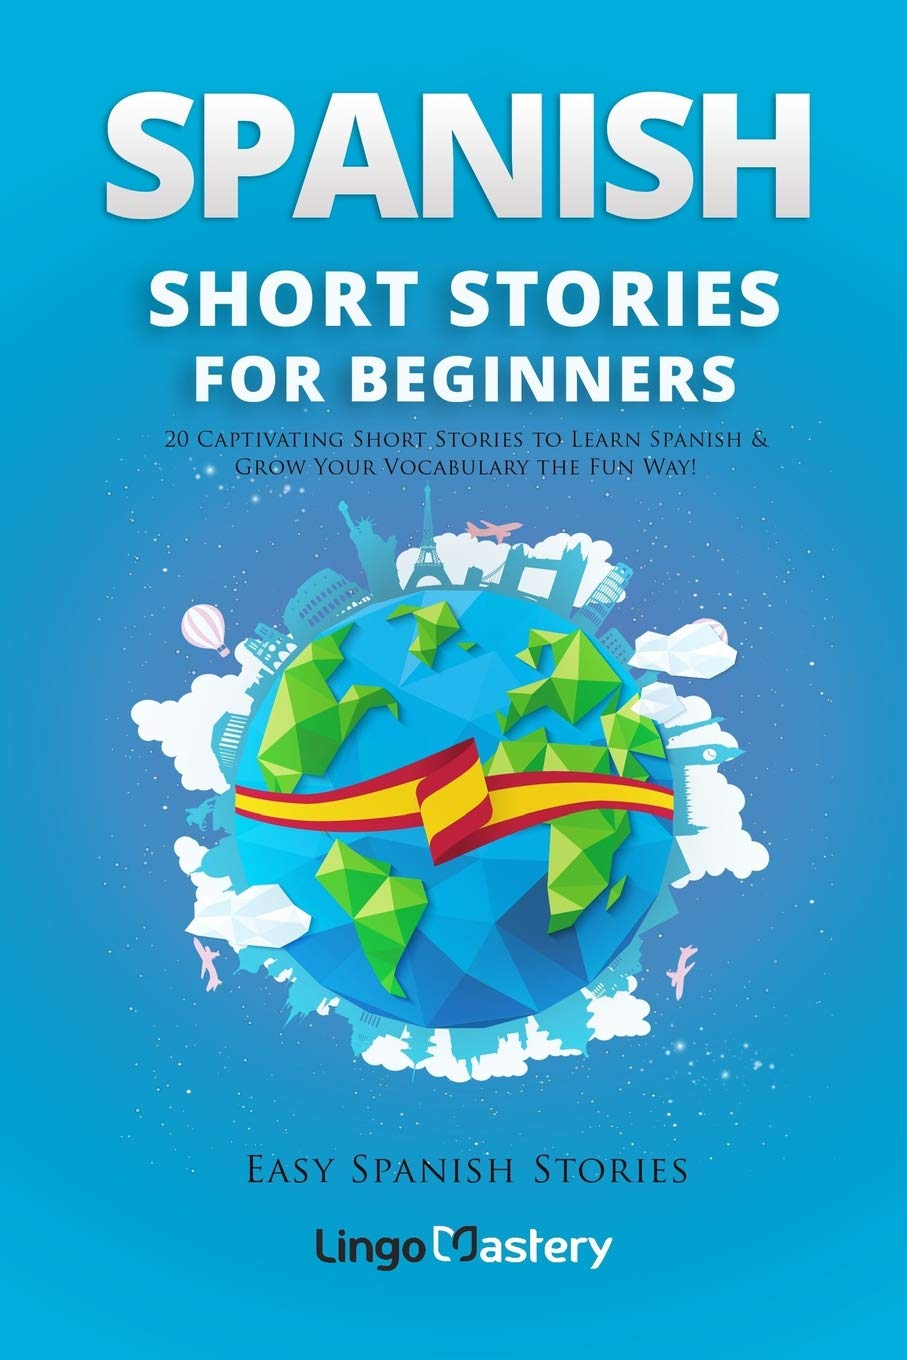 Spanish Short Stories Beginners Captivating product image